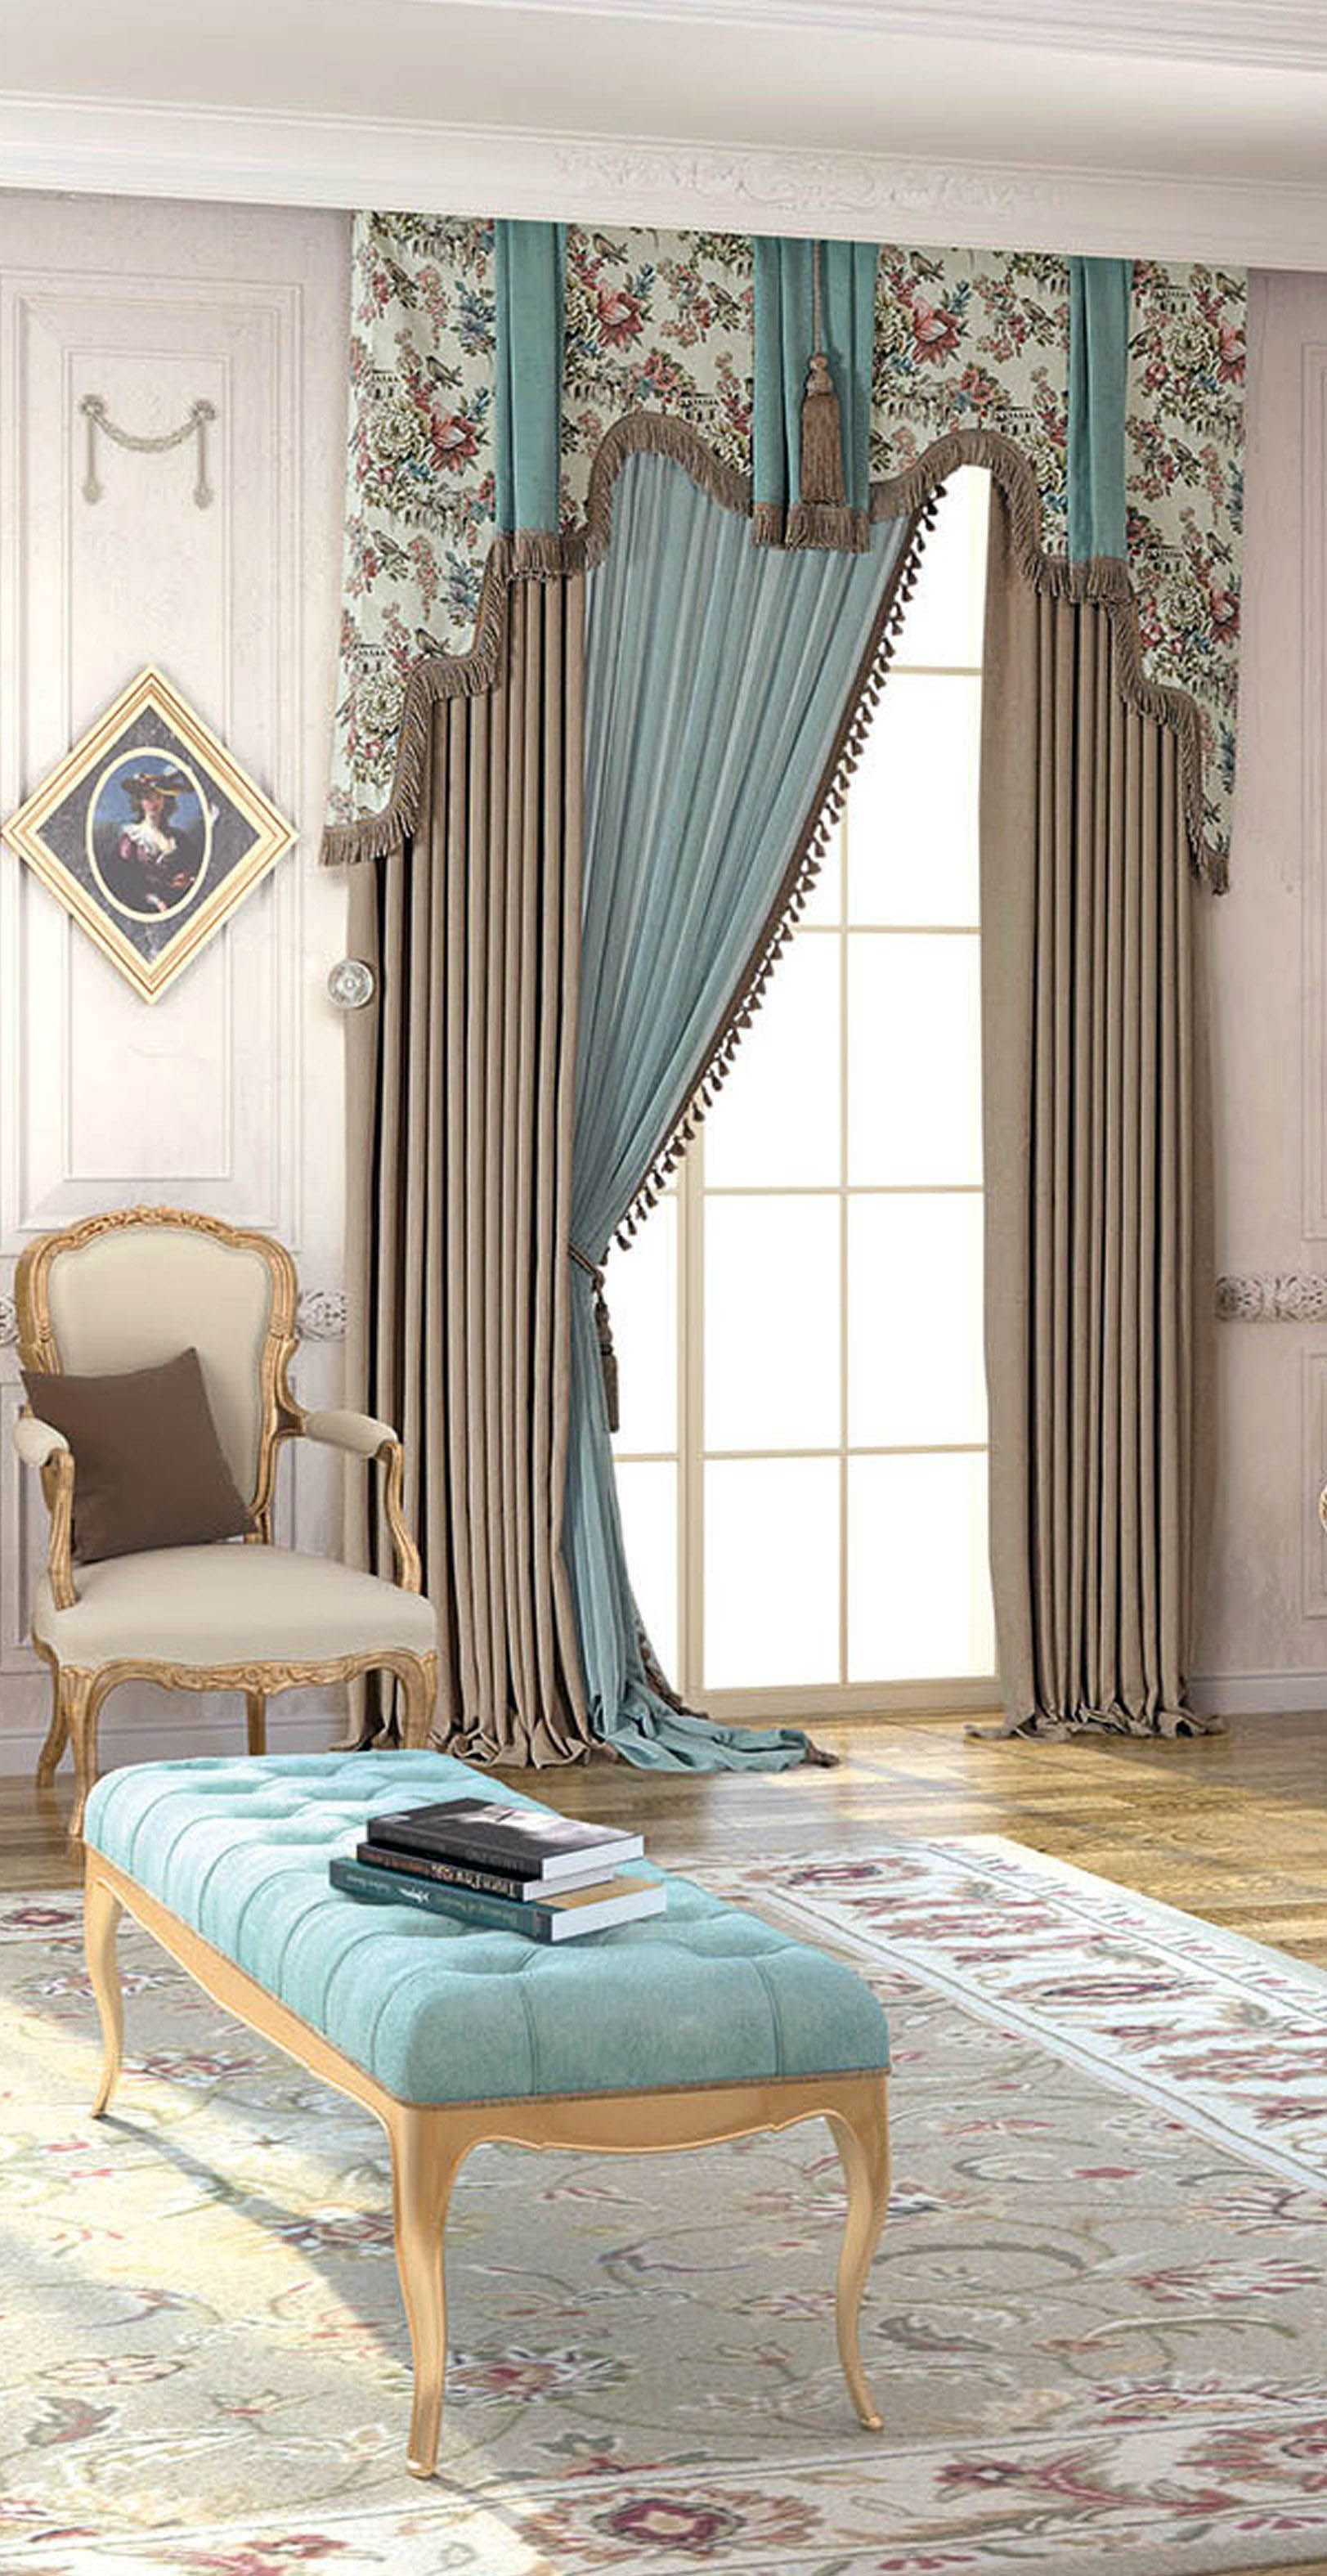 14 Stylish Bedroom Curtain Design Ideas With Images Home